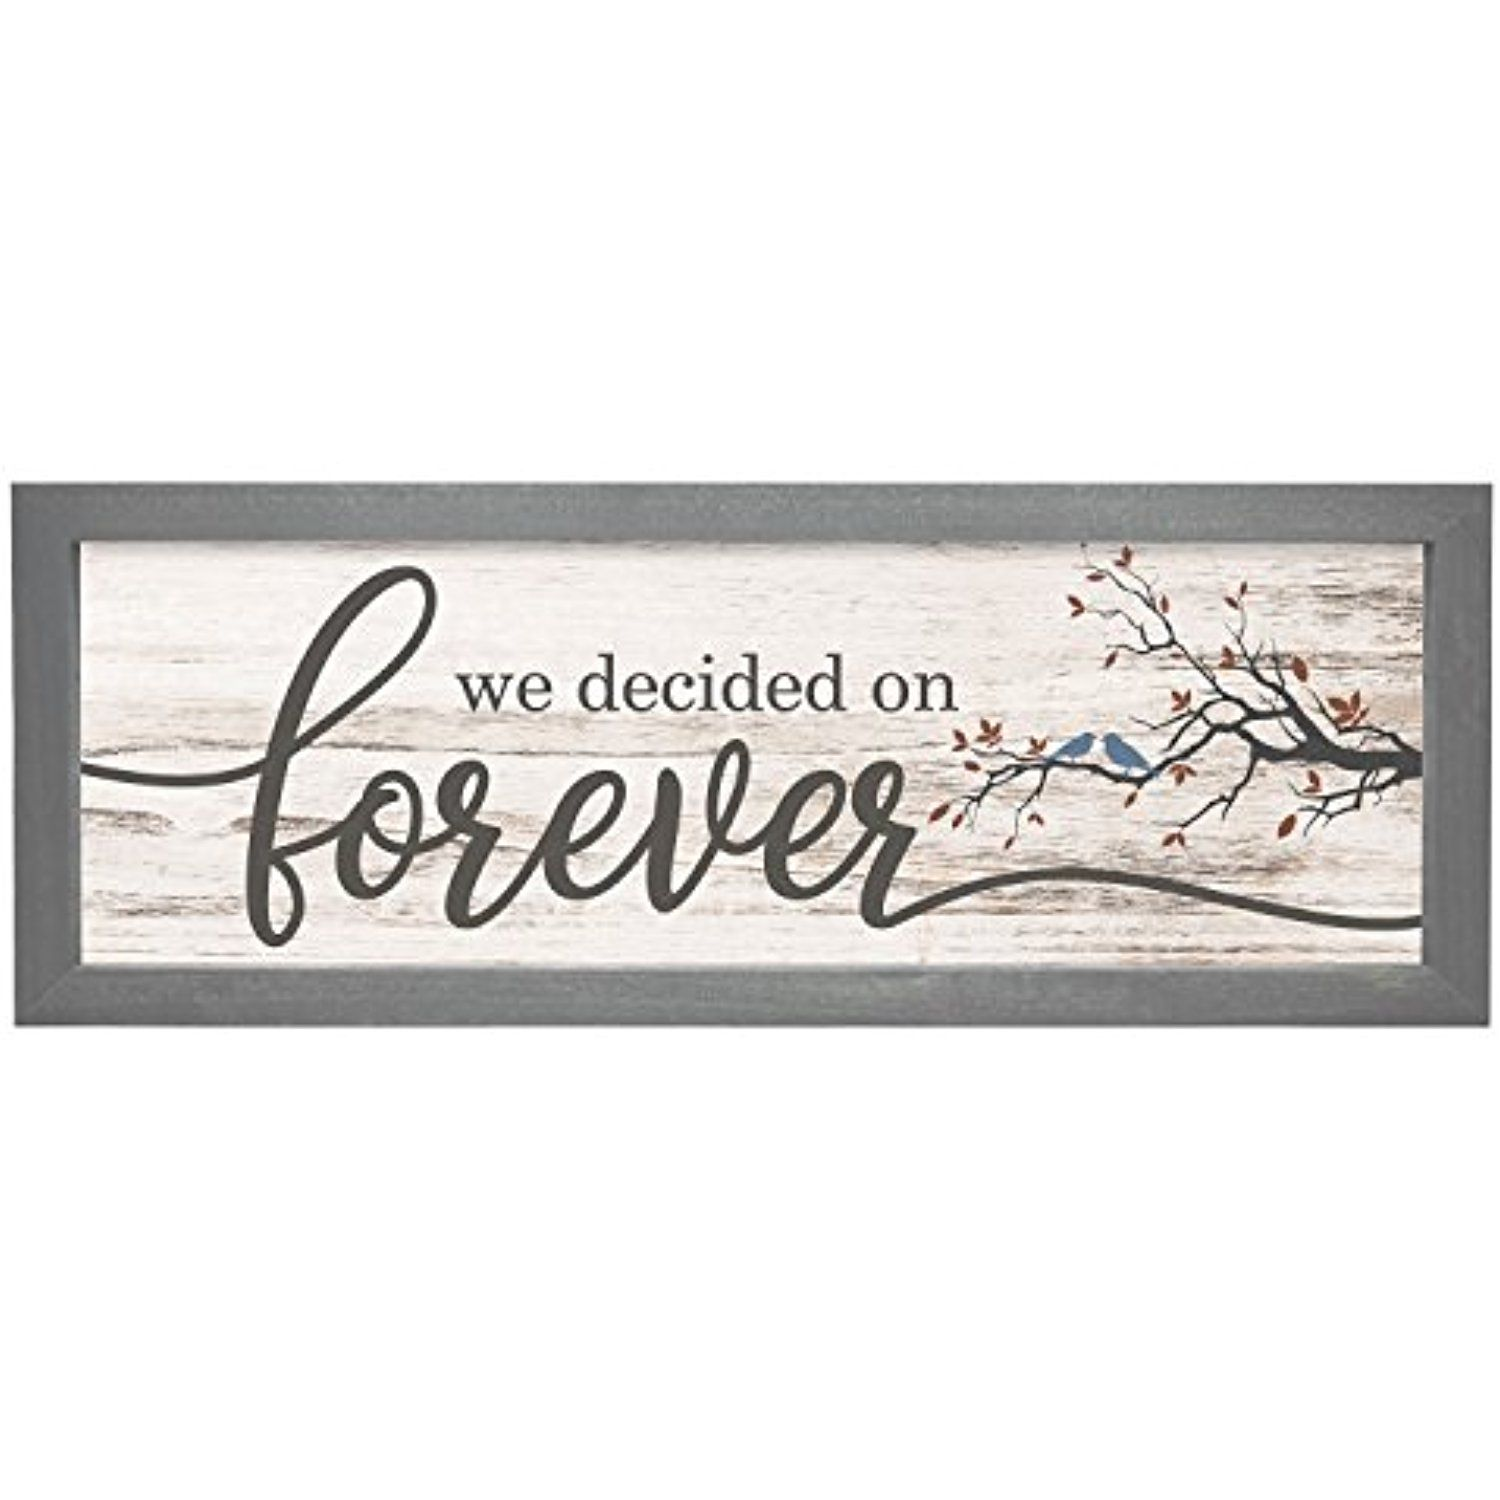 We Decided On Forever White Rustic Wood Wall Sign 6x18 (Gray Frame ...